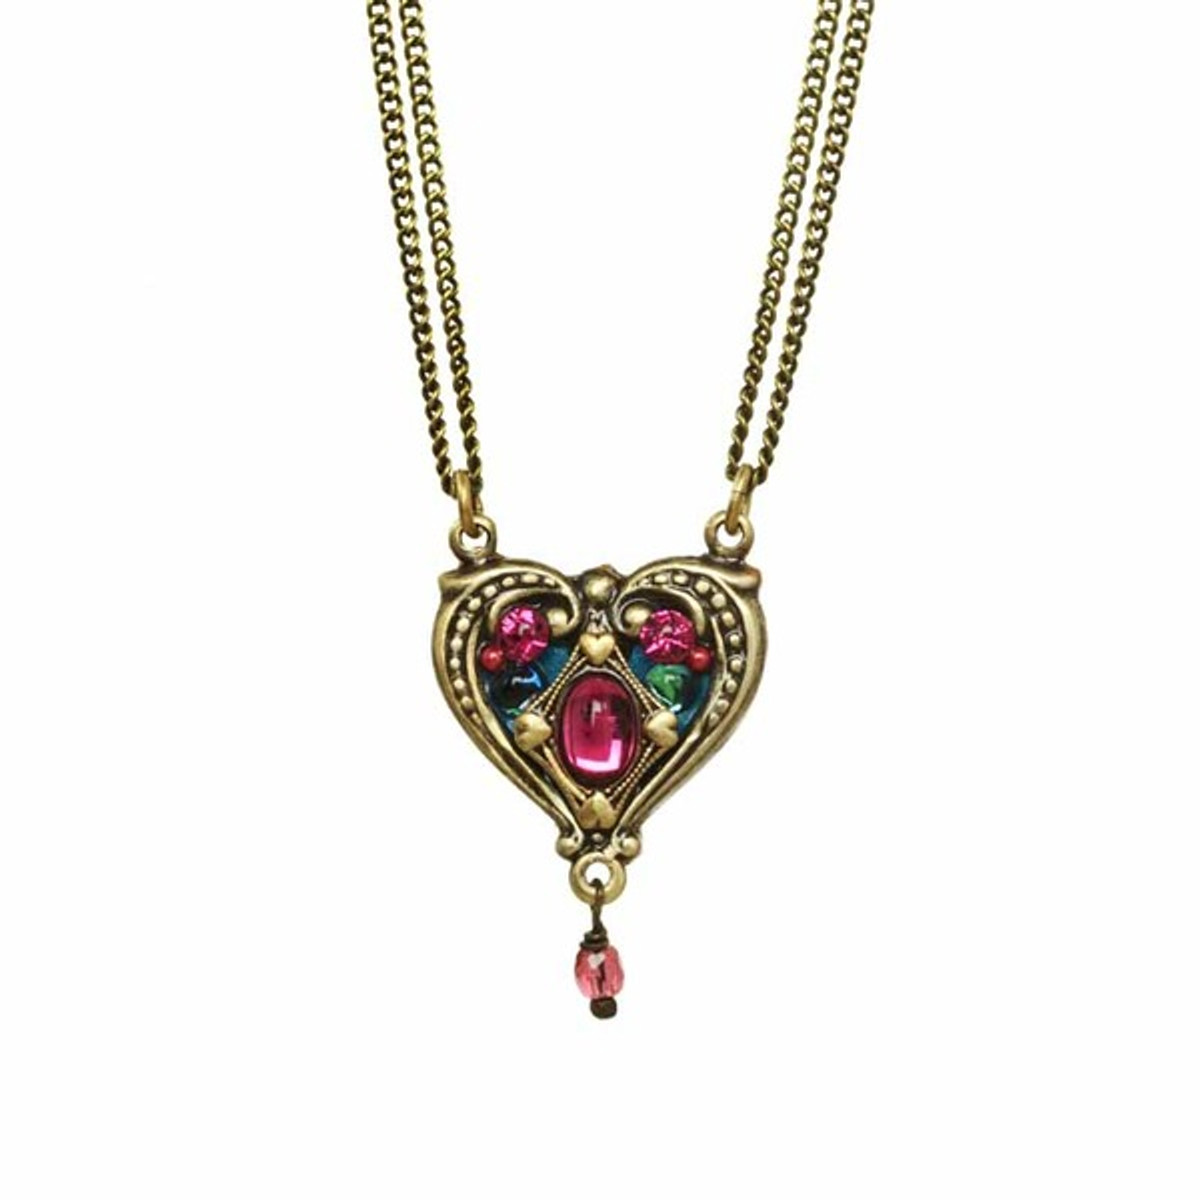 Michal Golan Jewelry Hearts Necklace